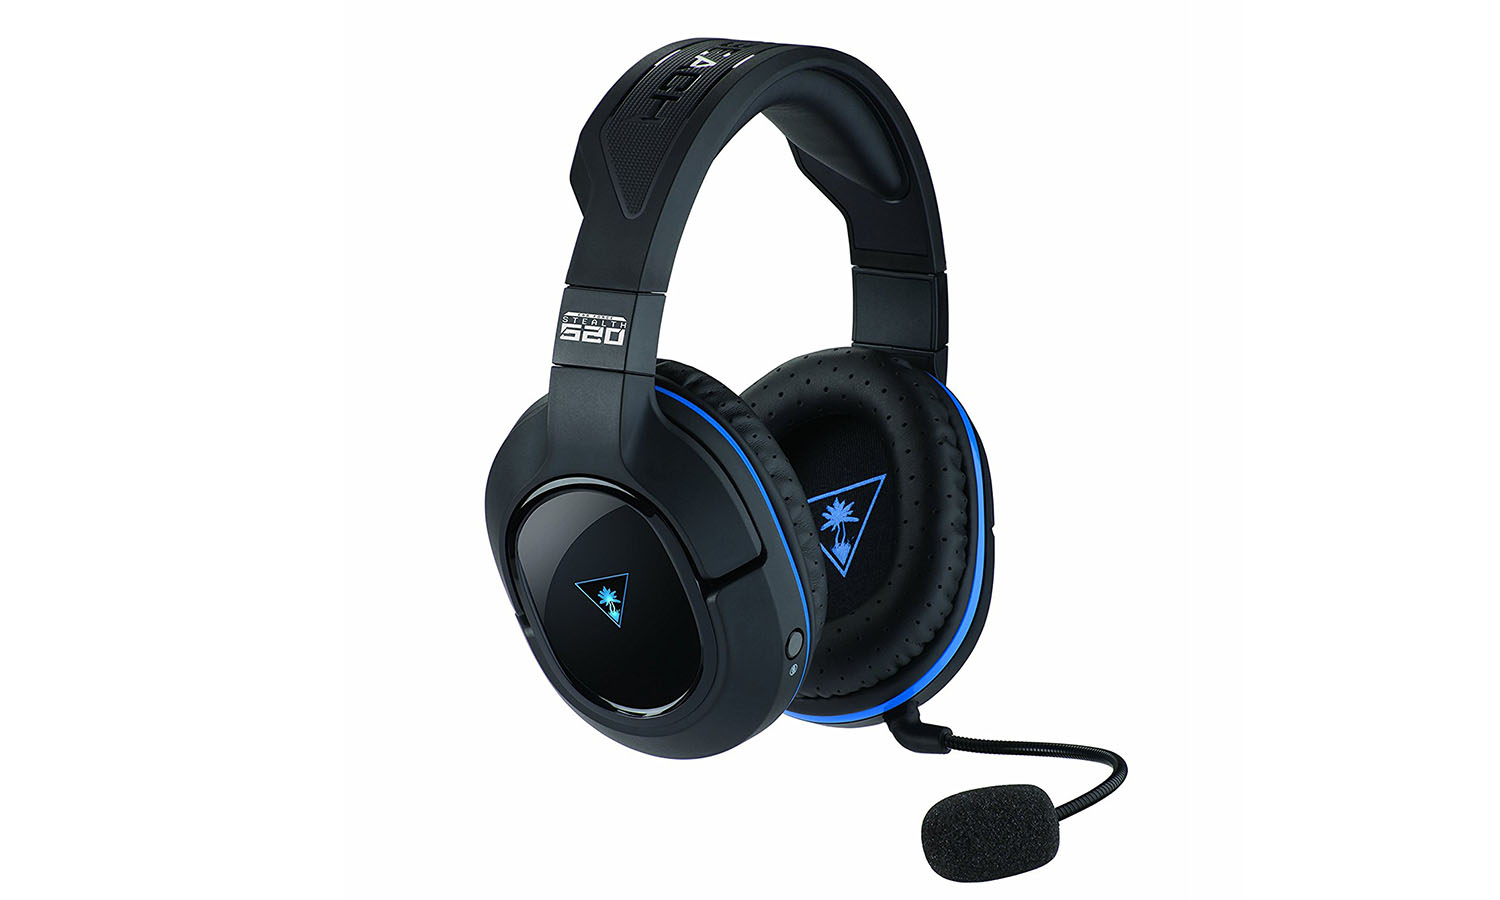 Turtle Beach Ear Force Stealth 520 Review: Behind the Times | Tom's